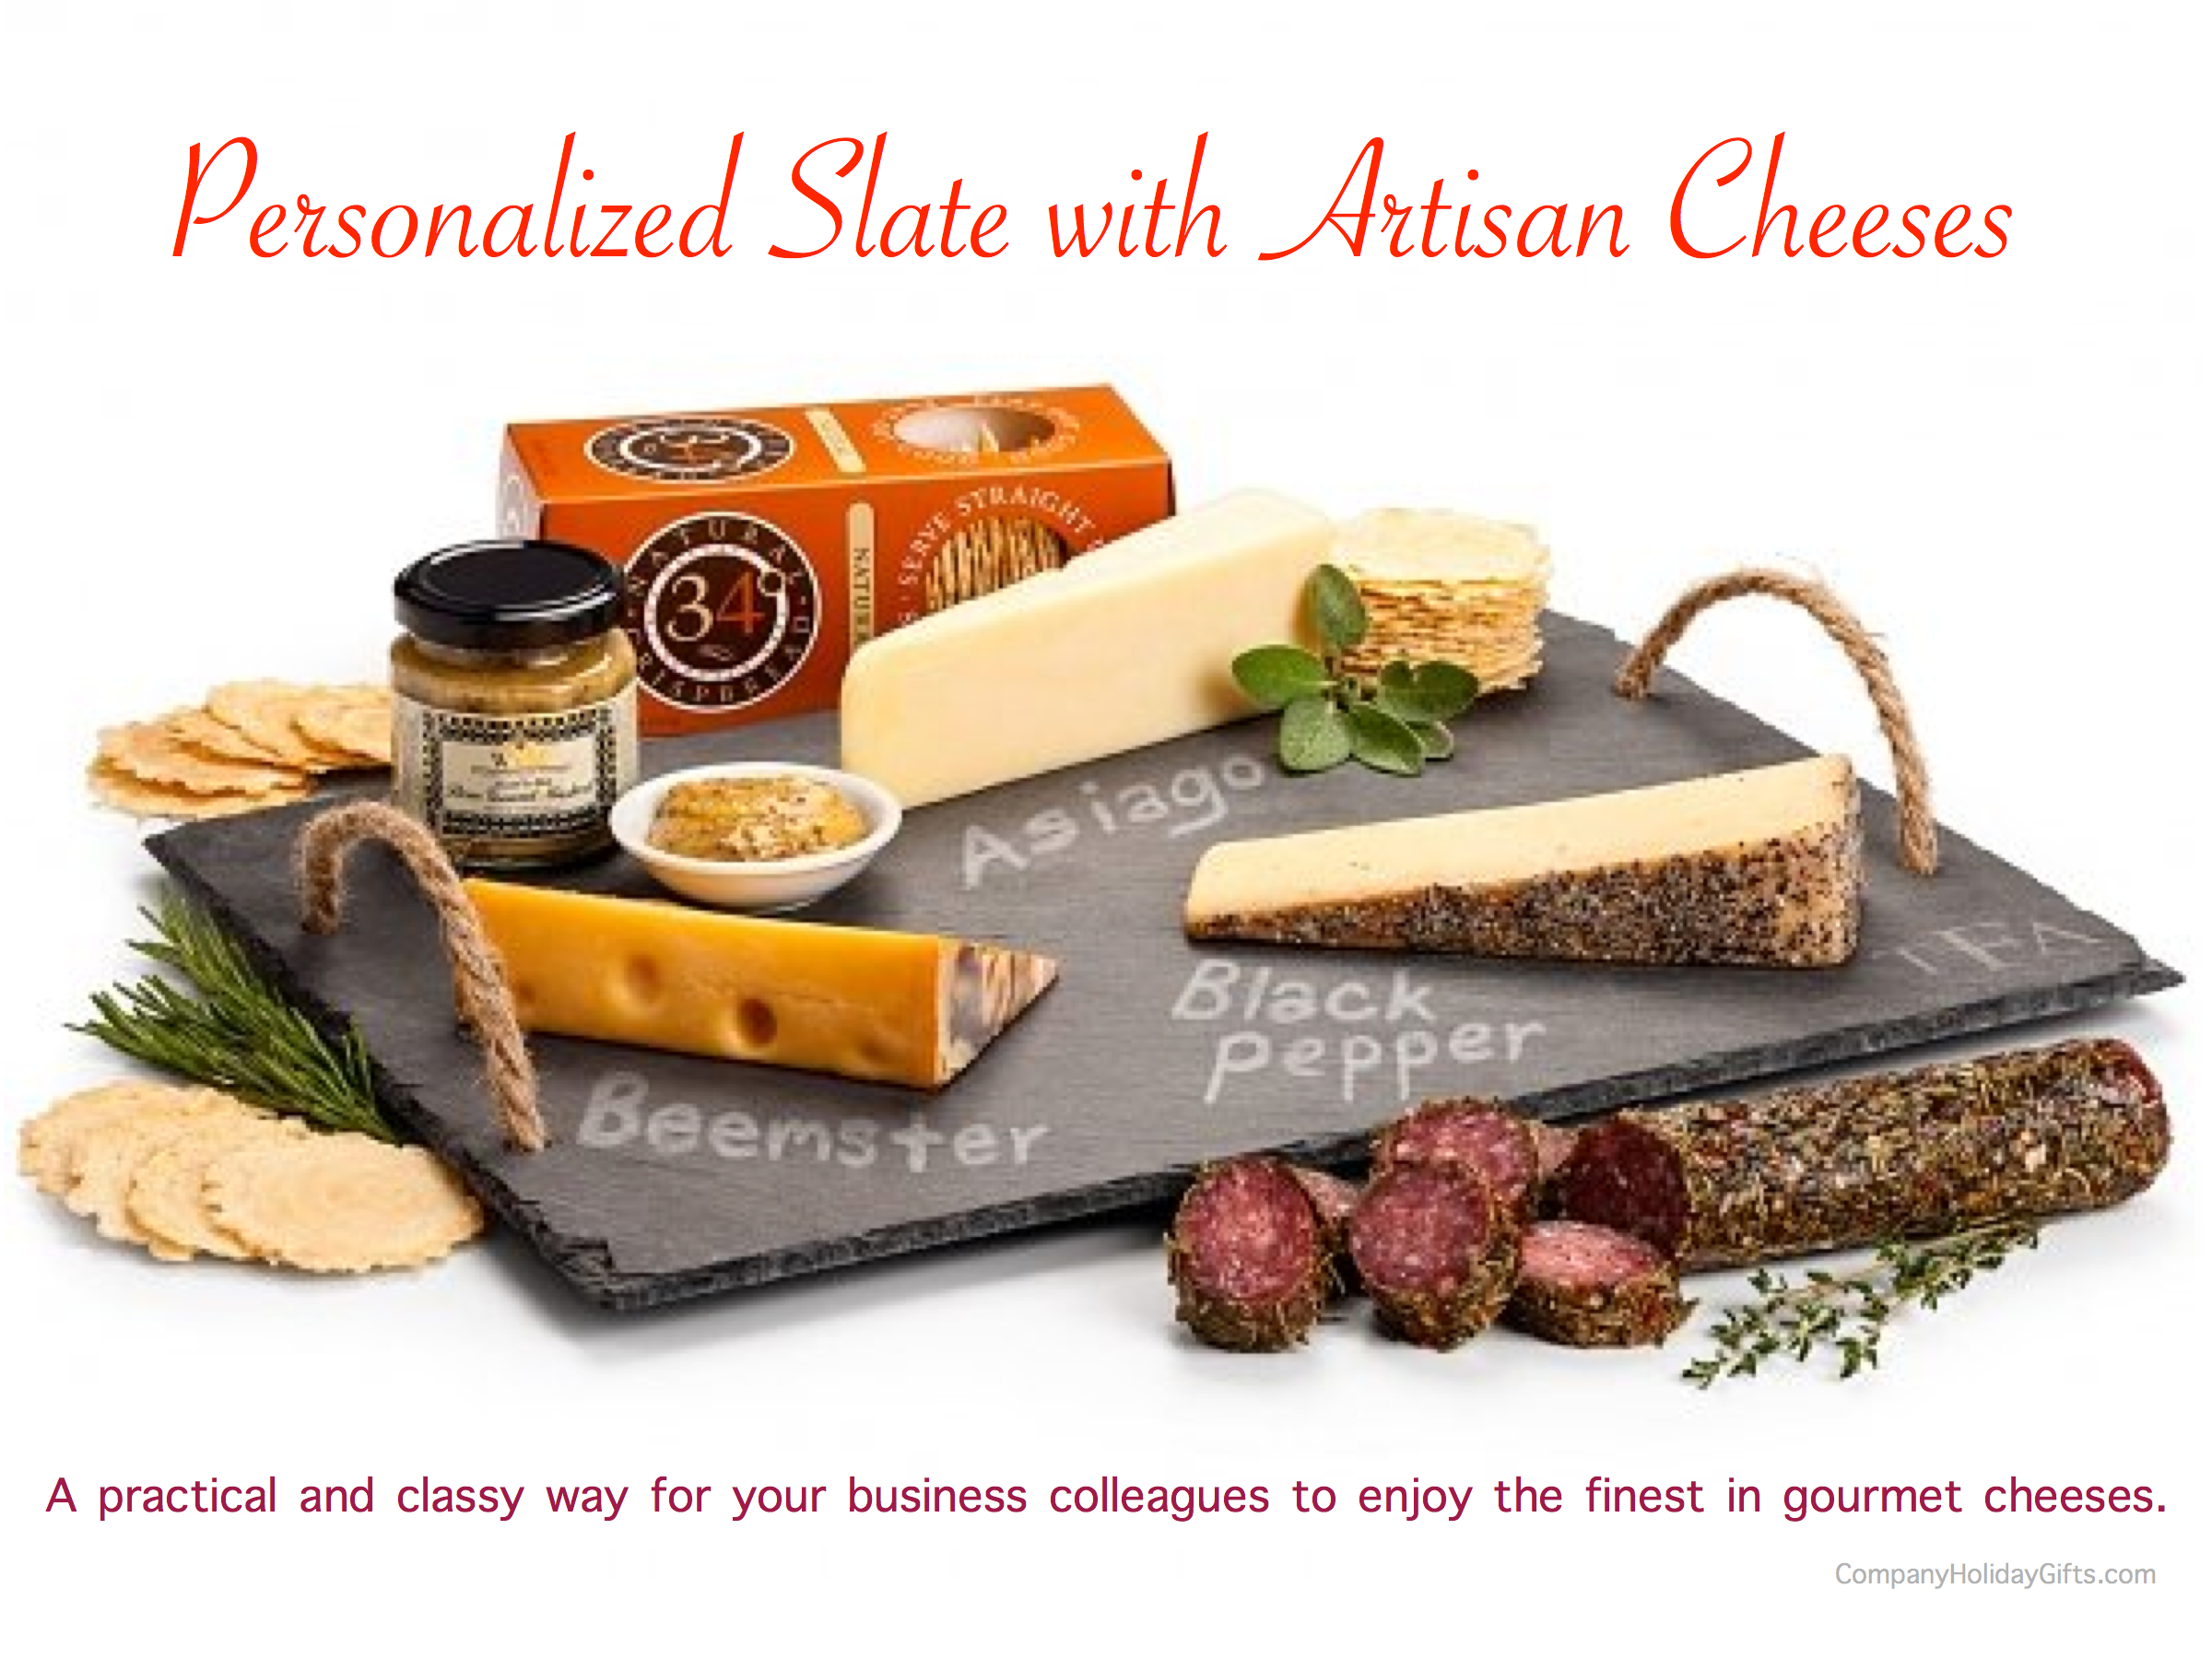 Personalized Slate with Artisan Cheeses, 20 Best Company Holiday Gift Ideas Under $100.00